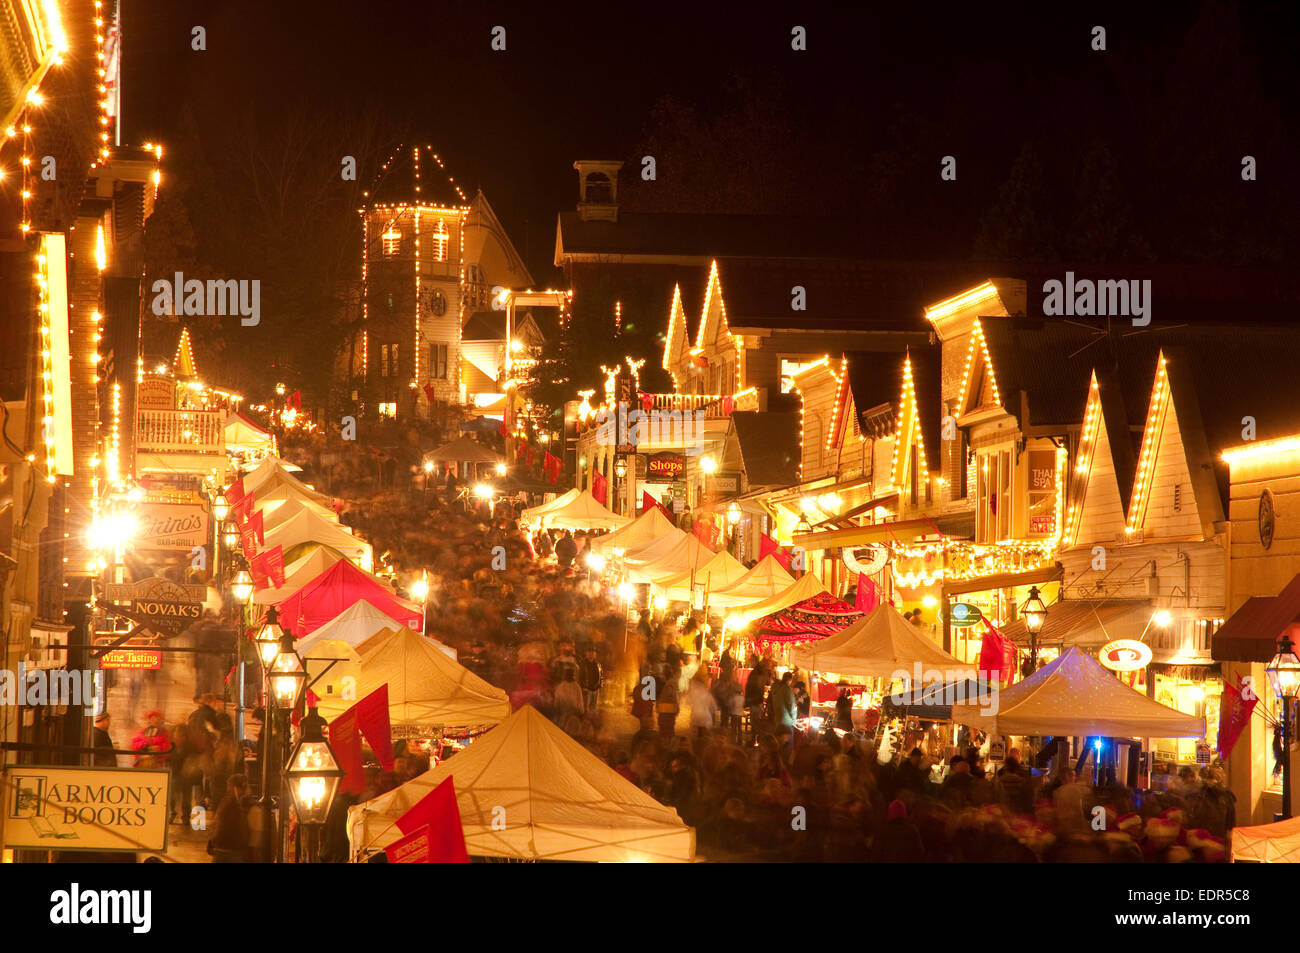 Historic Nevada City Glowing At Dusk With Christmas Lights Stock Photo Alamy